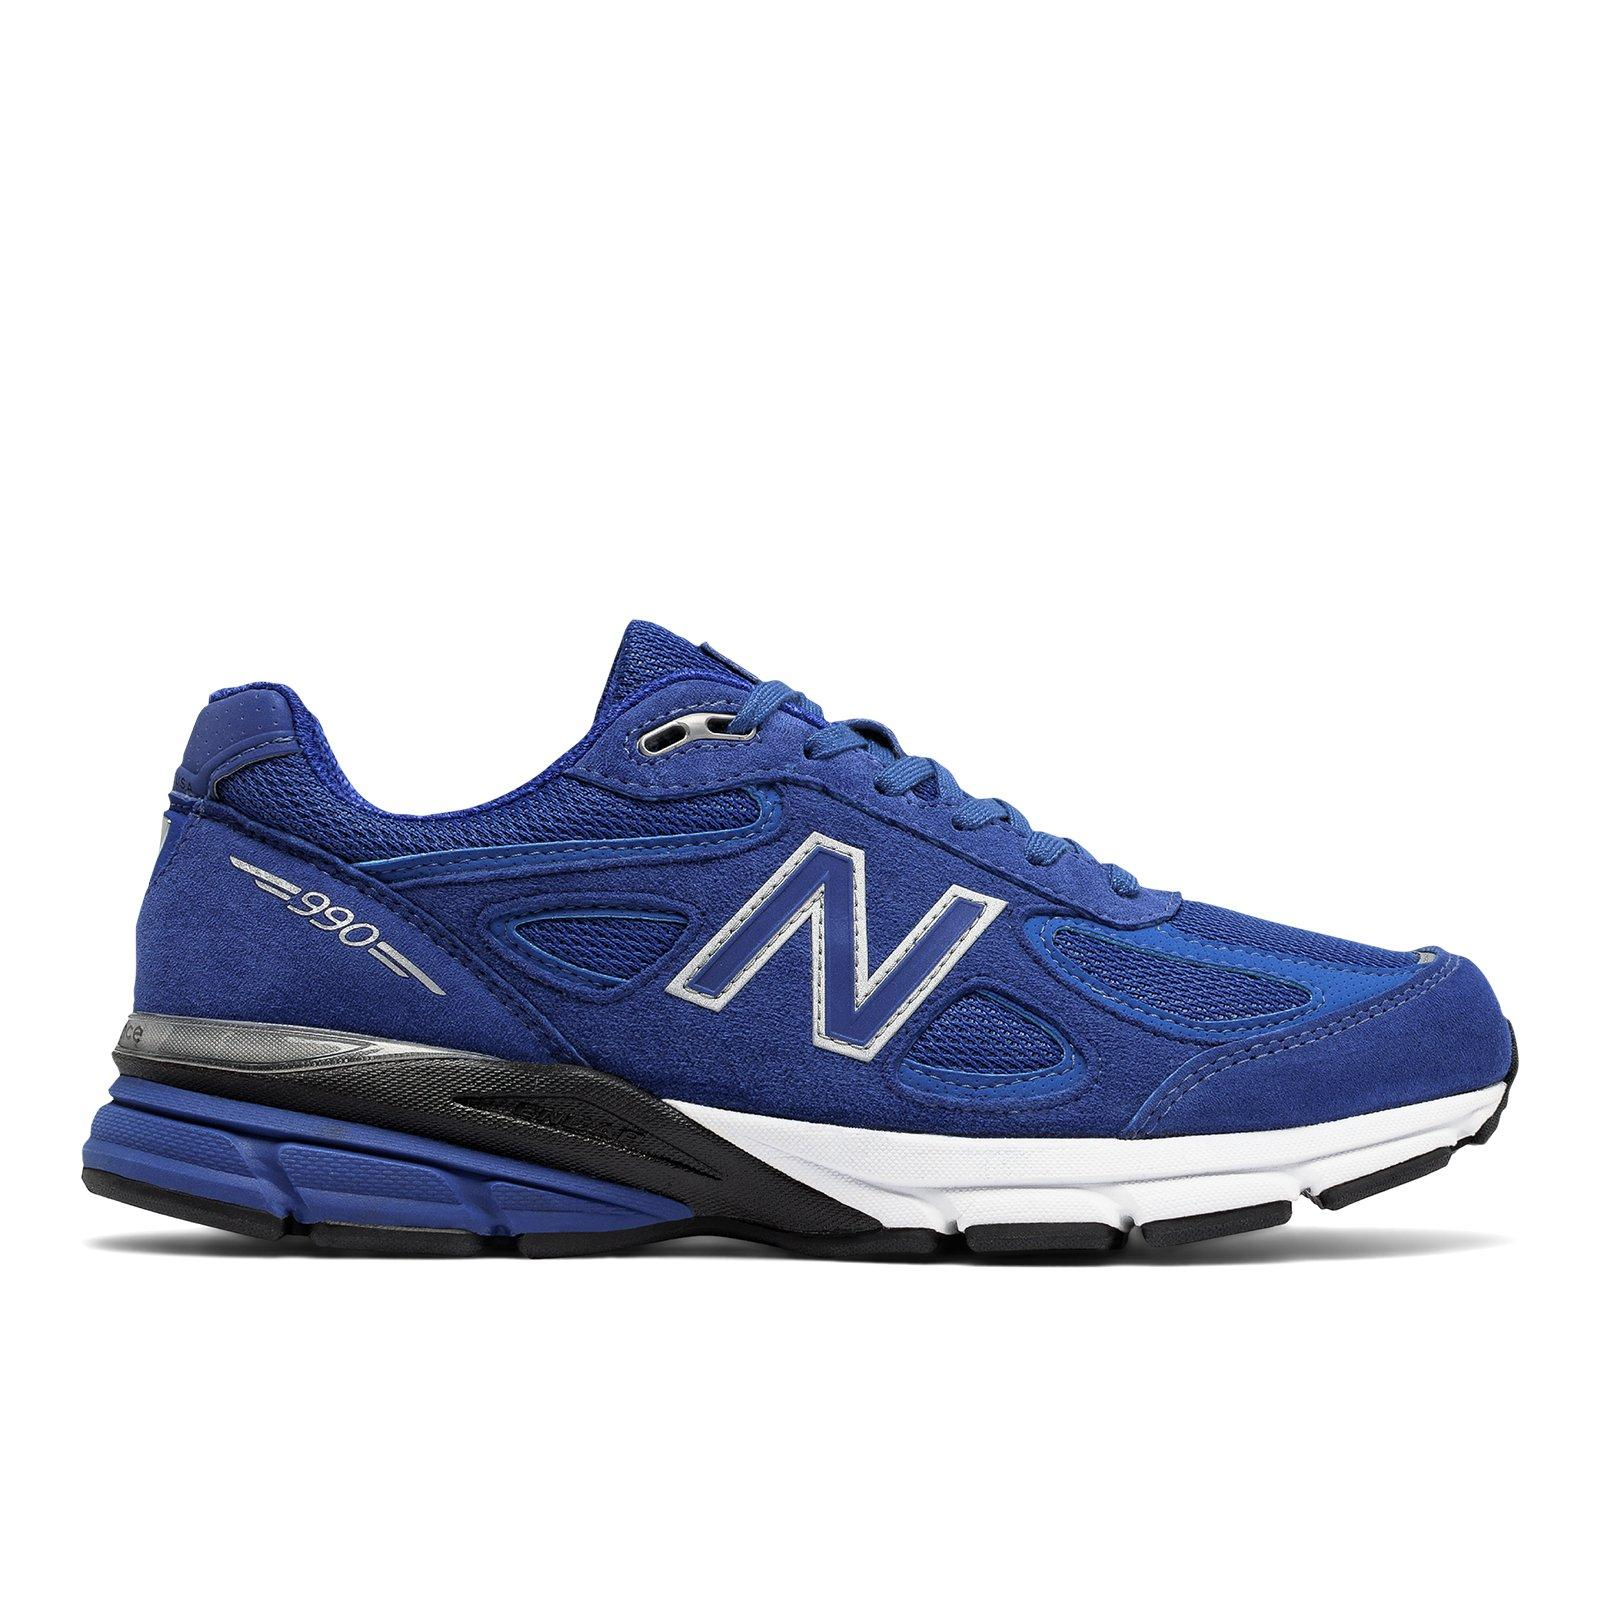 New Balance 990 v4 Men\u0027s Running Shoes - Main Container Image 1